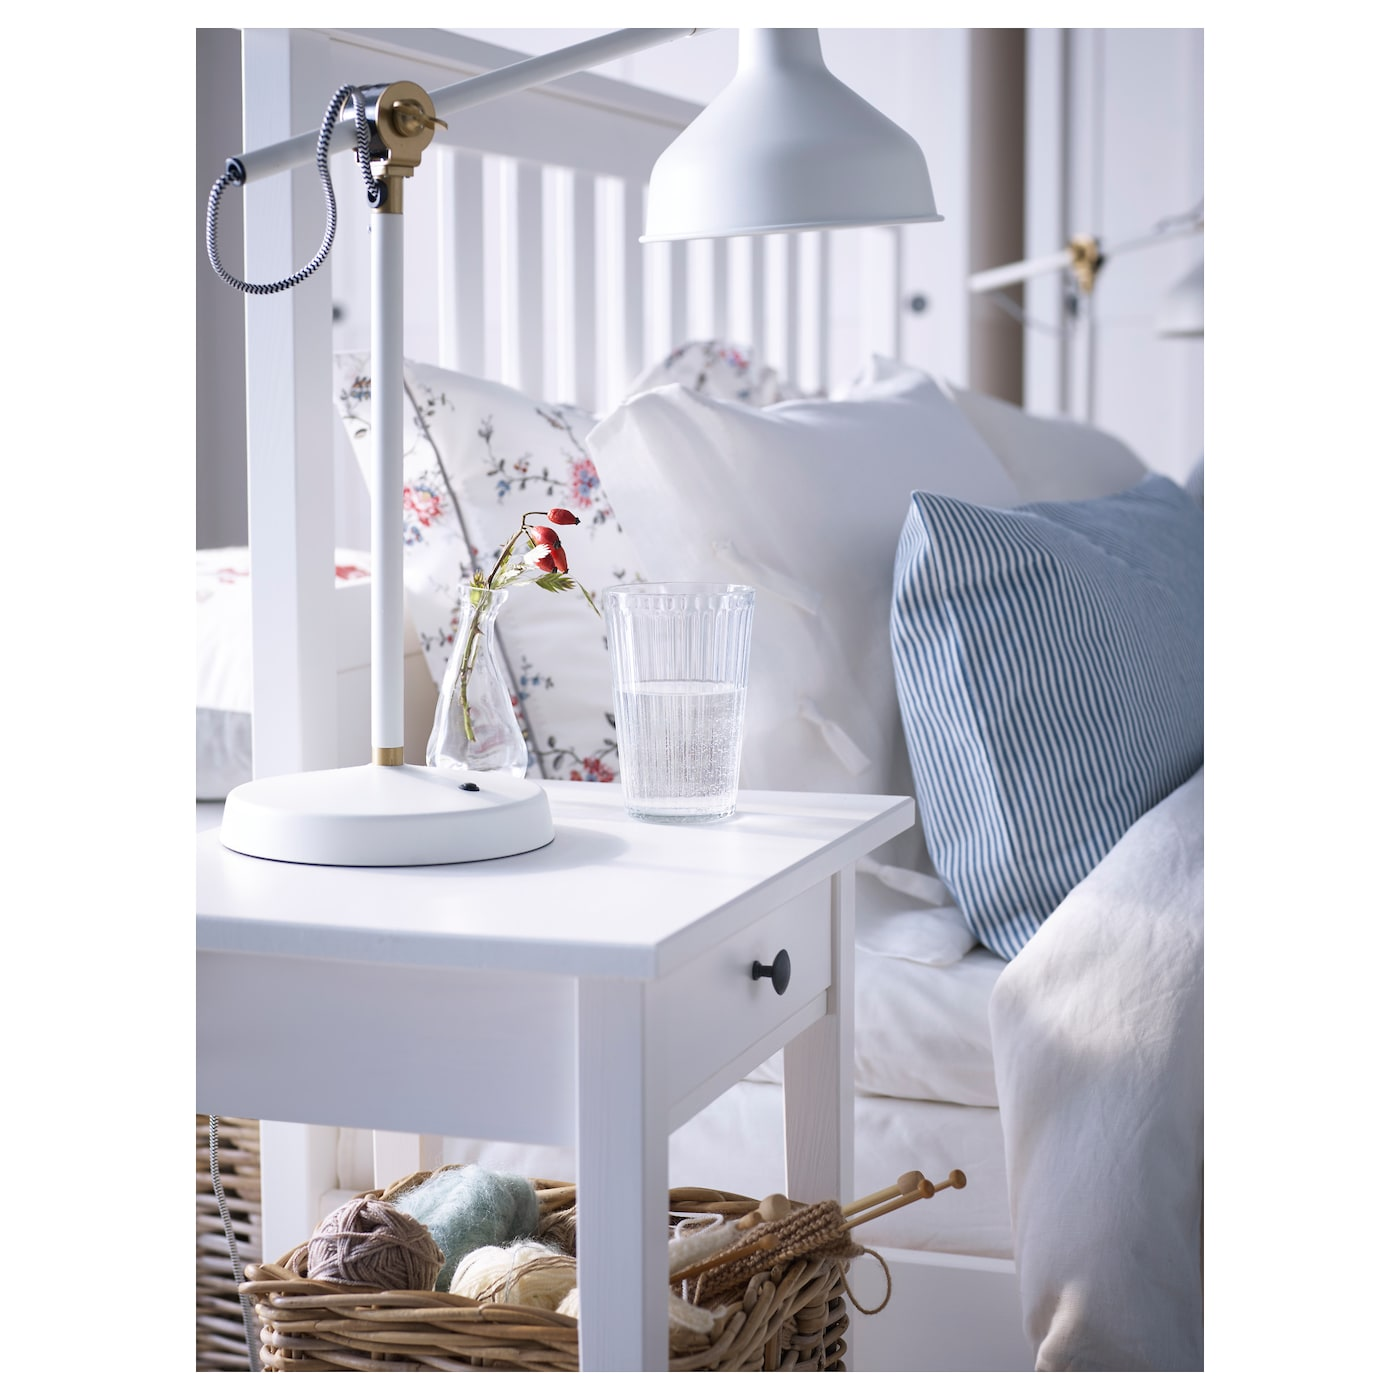 ikea hemnes bed frame made of solid wood which is a hardwearing and warm natural - Hemnes Bed Frame